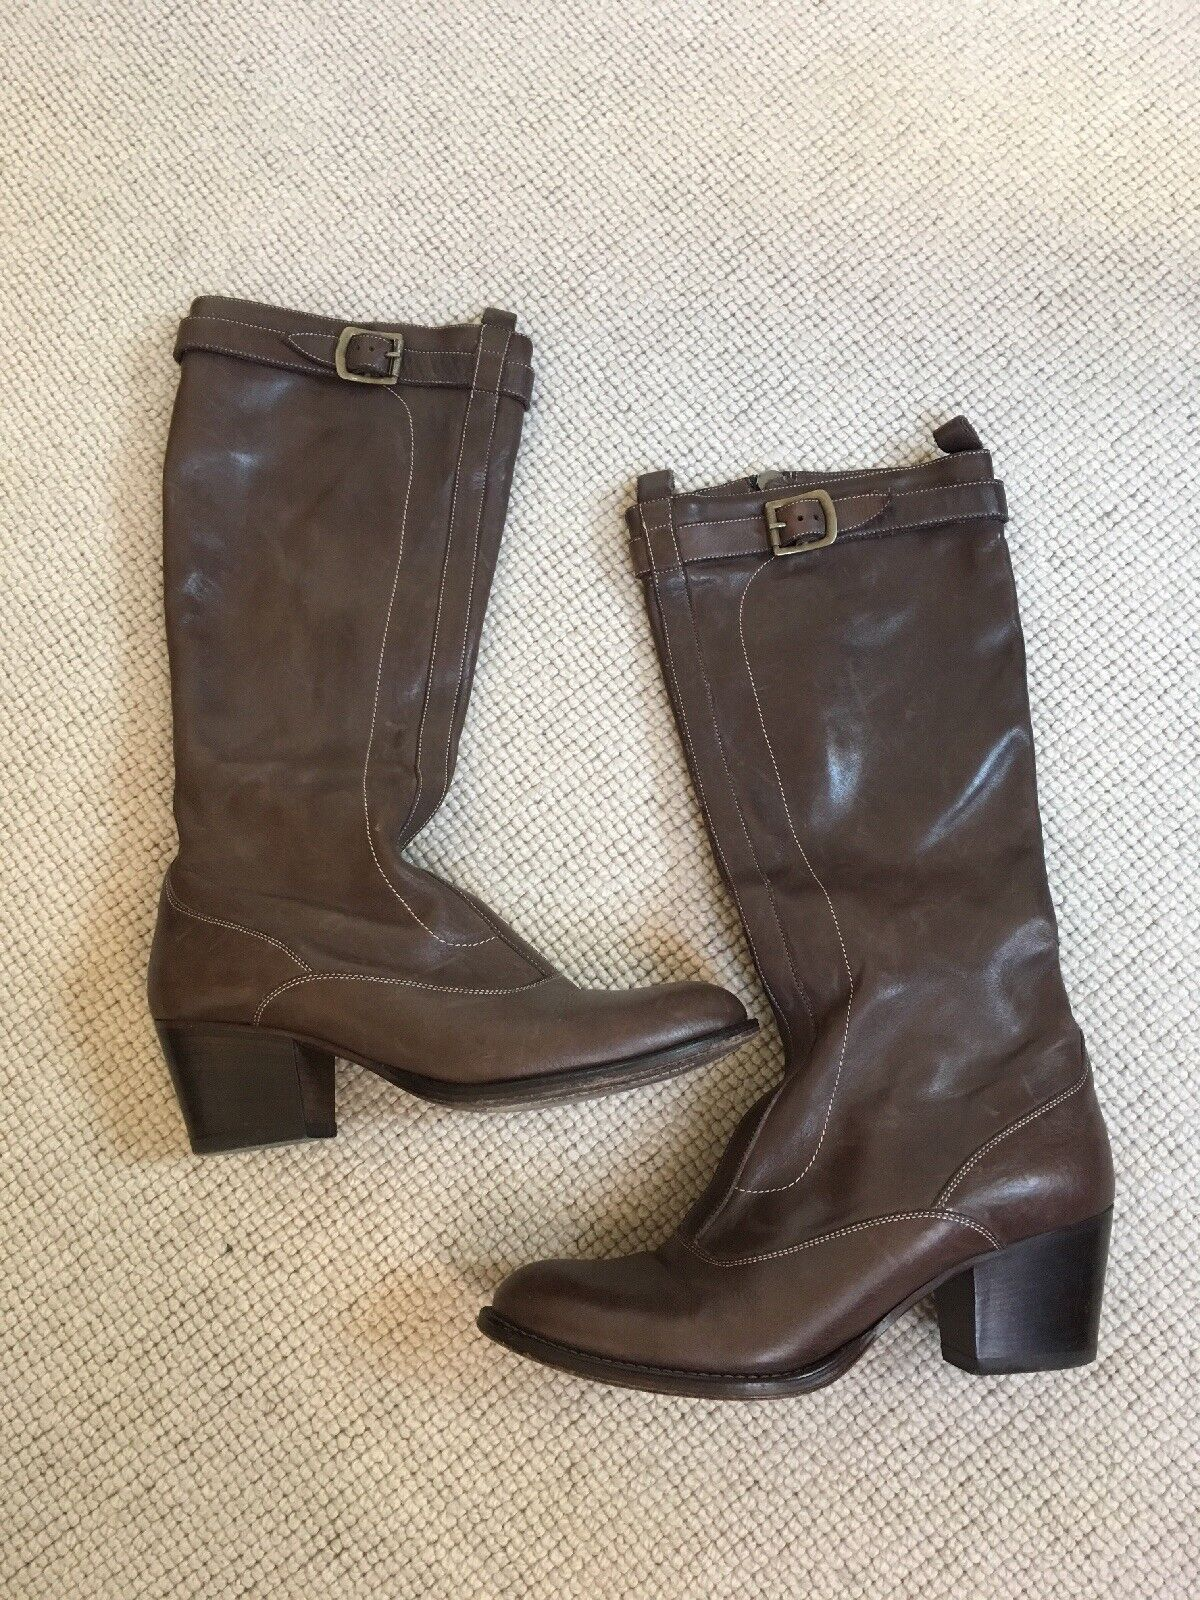 Grandes zapatos con descuento Paul Smith Ladies Boots Size 39